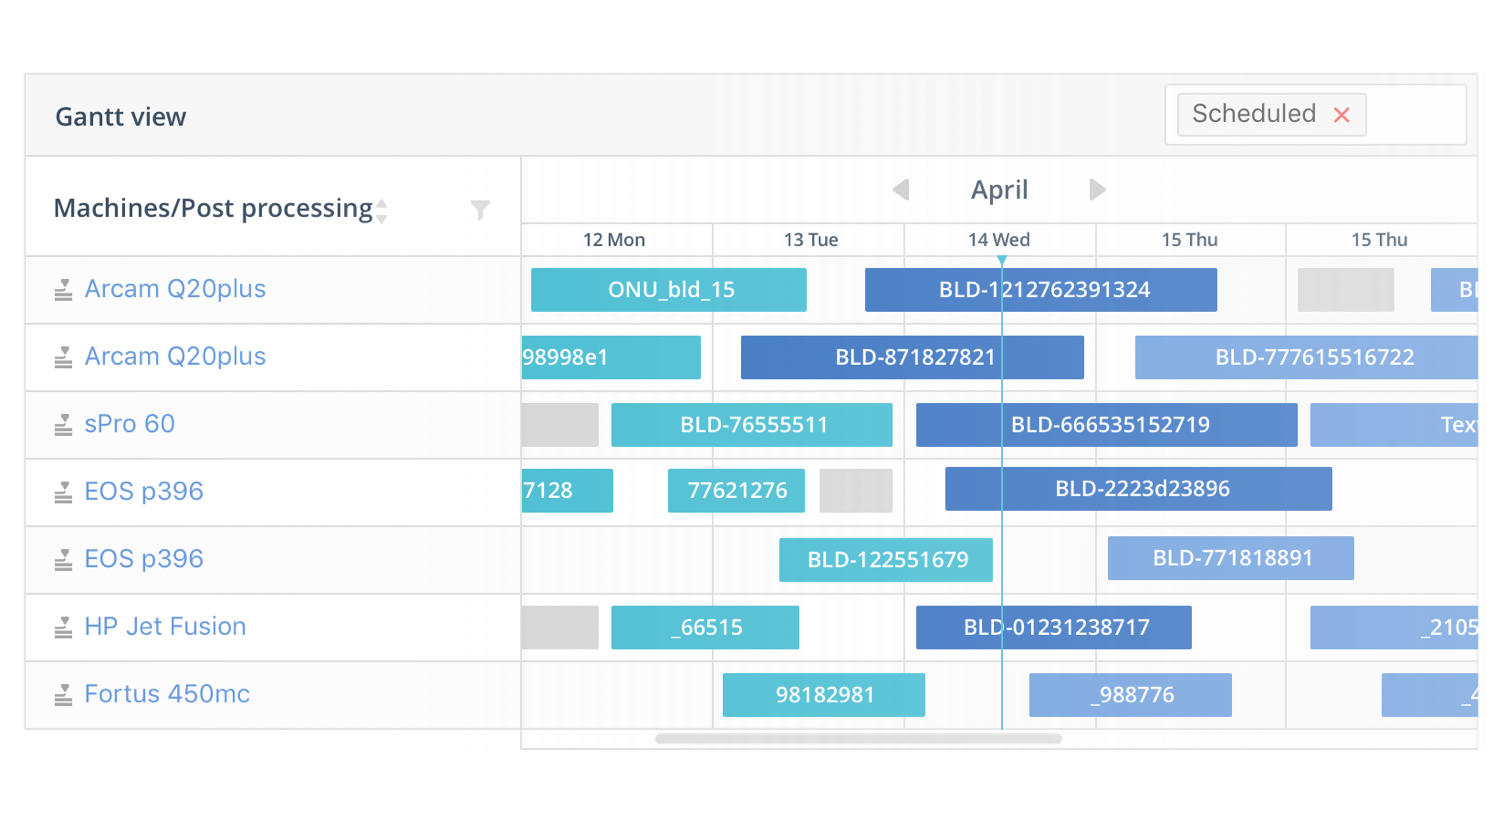 AMFG's Production Management Gantt View. Image via AMFG.